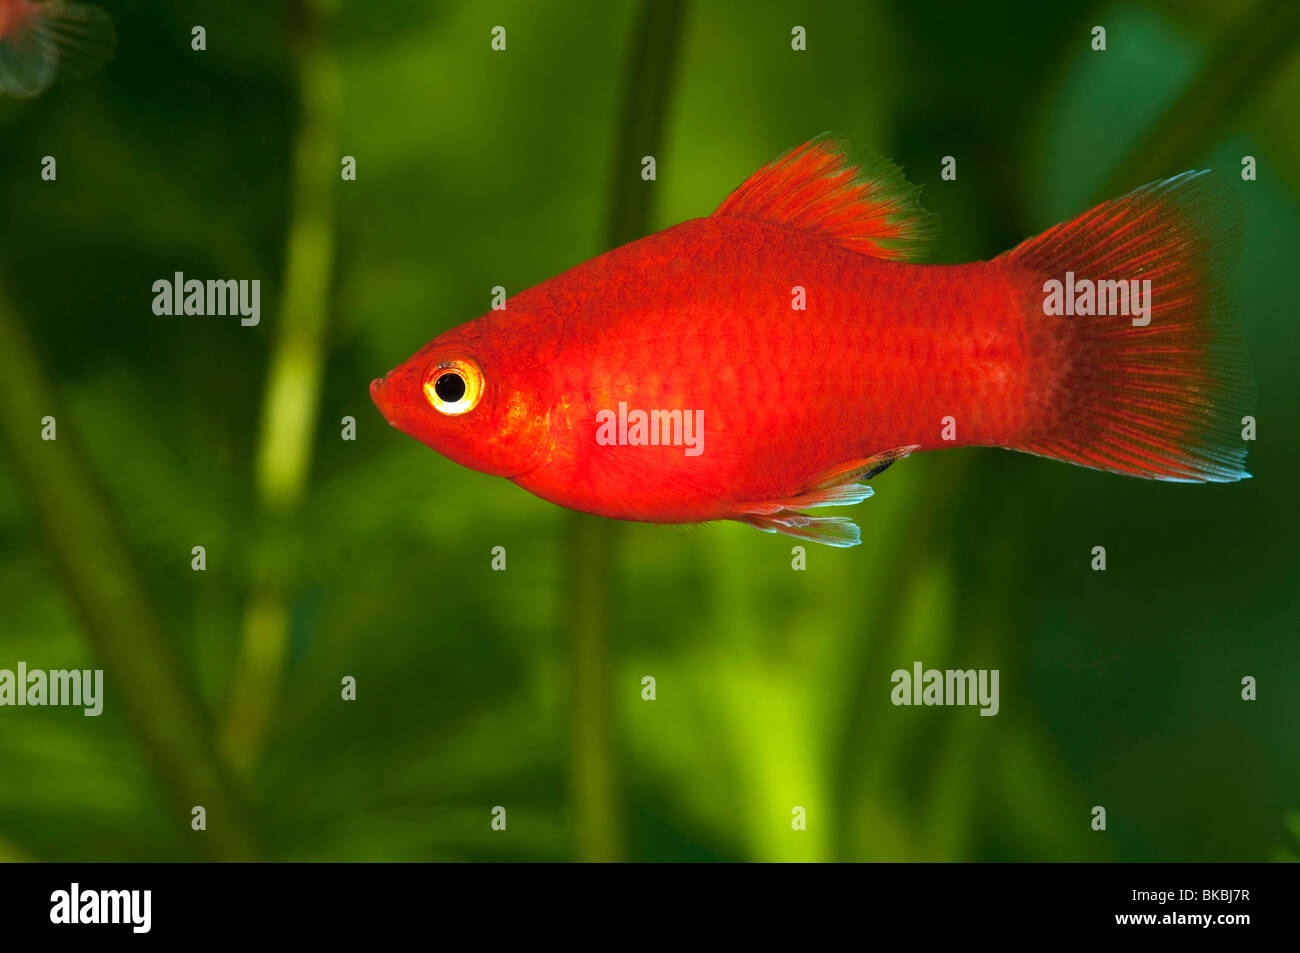 Platy Fish Stock Photos & Platy Fish Stock Images - Alamy